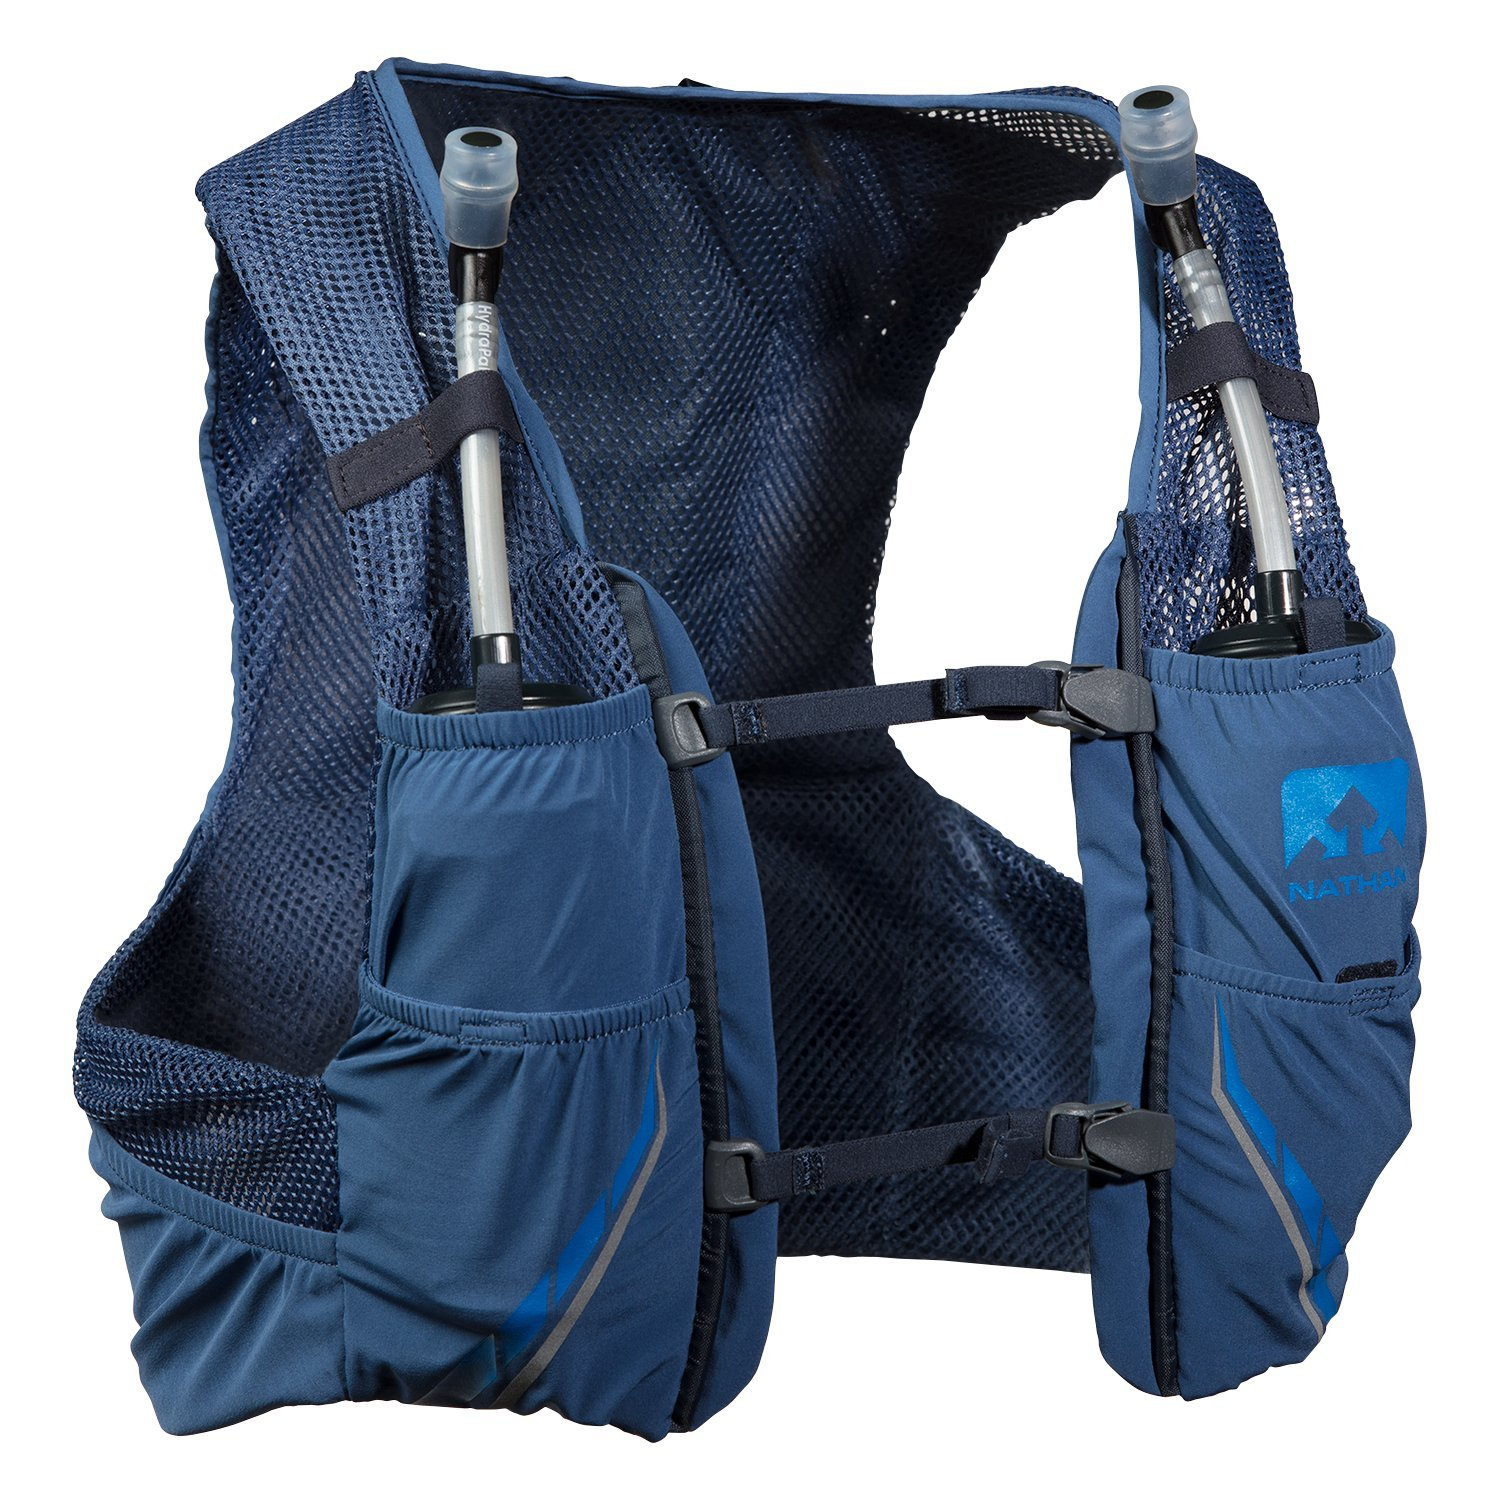 Nathan NS4544-0377-31 Male Vapor Zach 2.5L Running Hydration Packs, True Navy/Blue Nights, X-Small